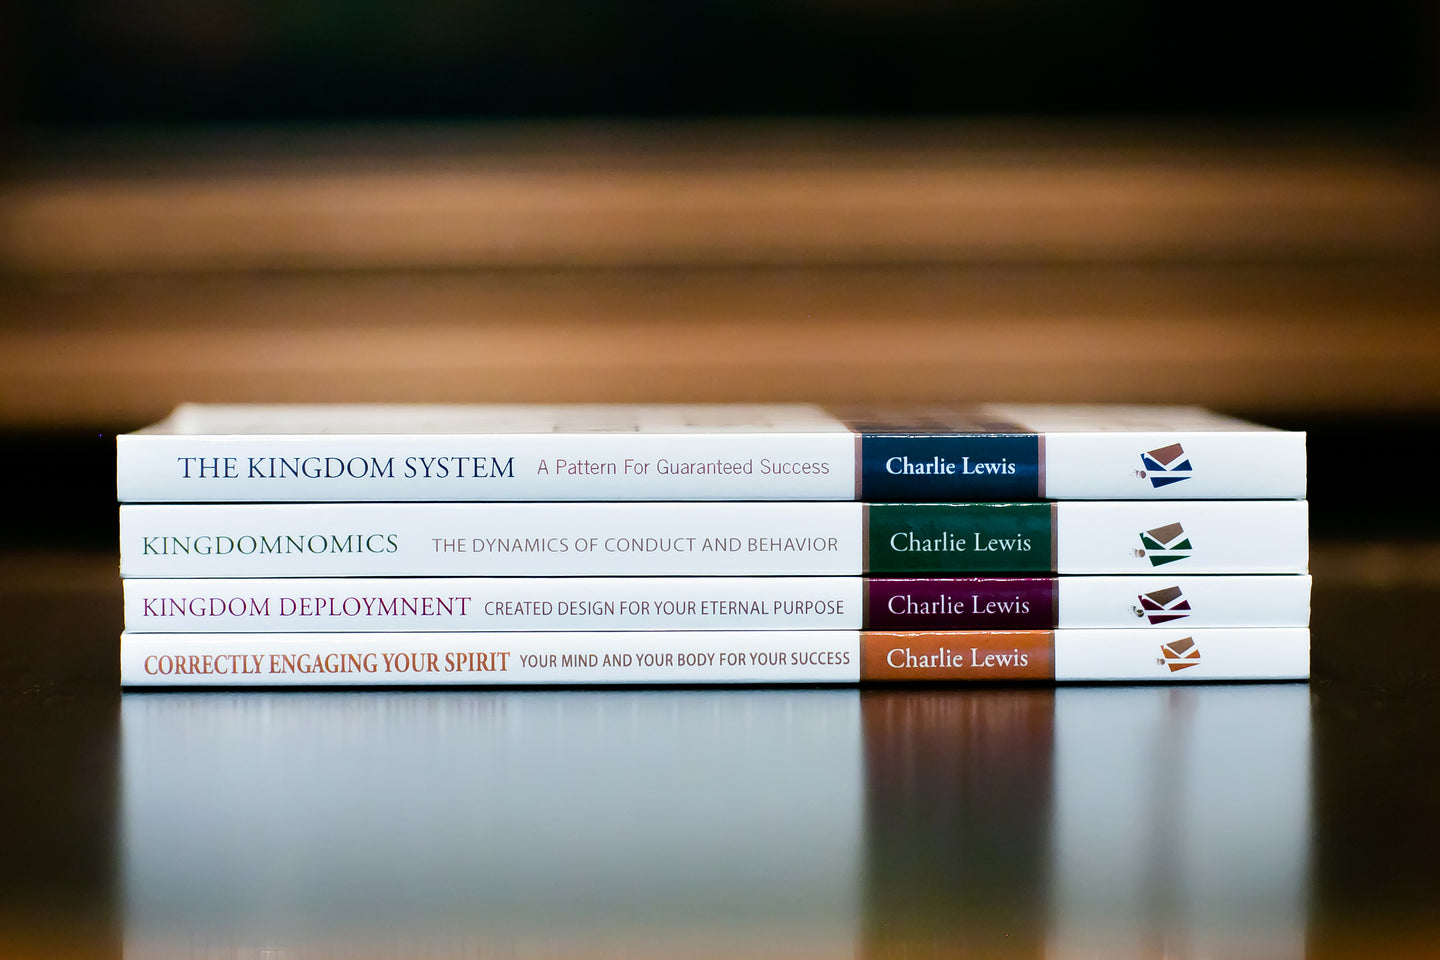 The Kingdom System Series: Paperbacks